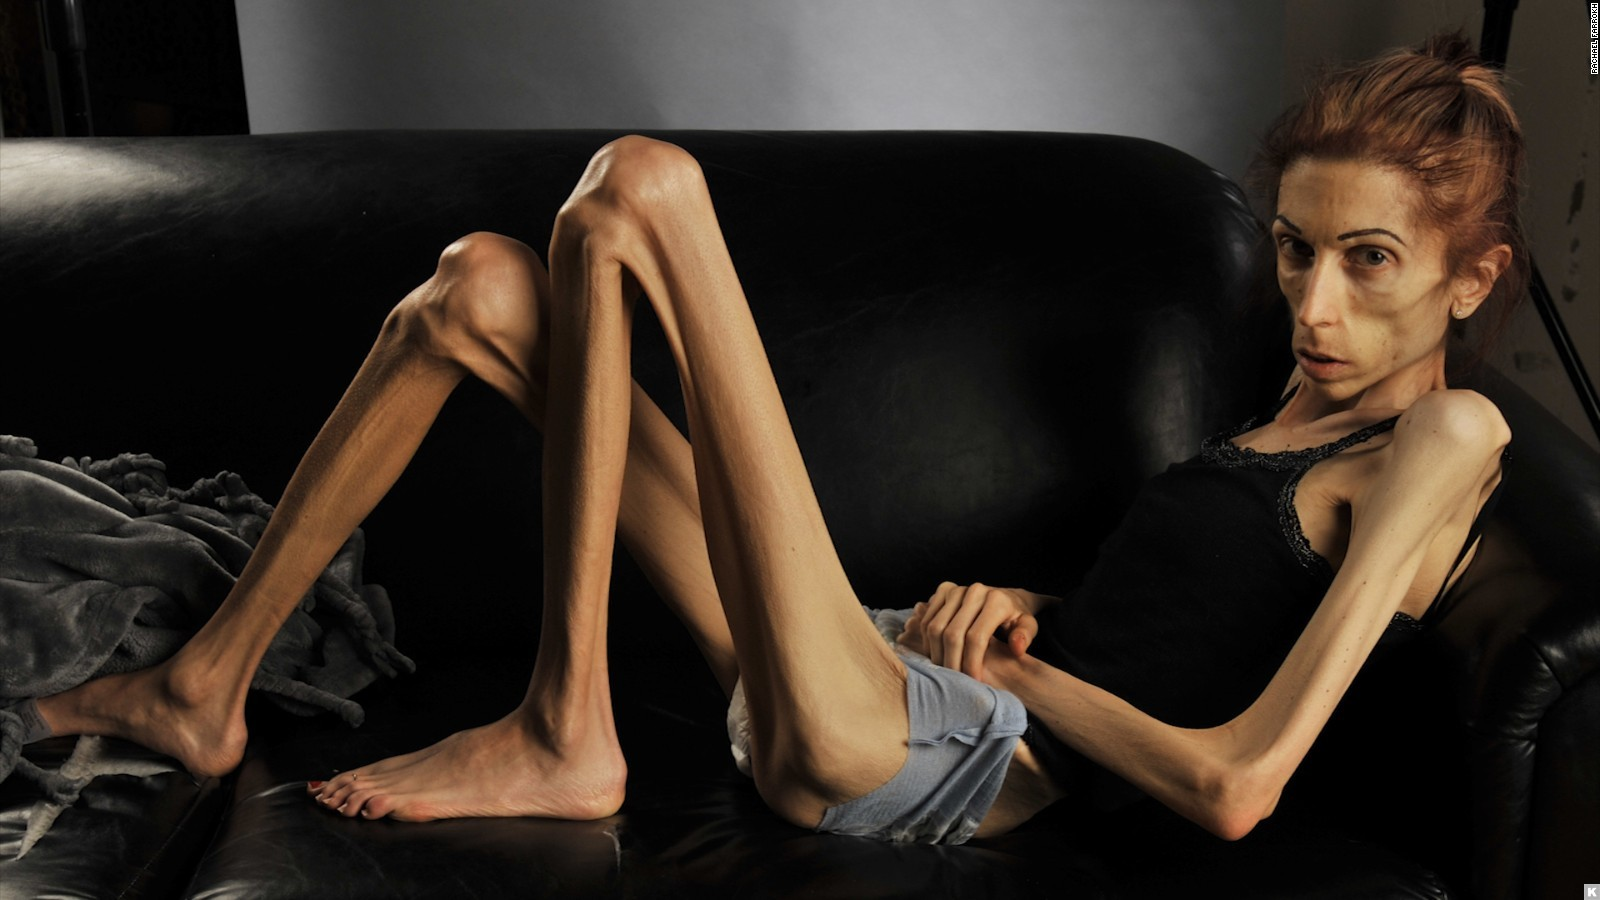 an overview of the mental illness anorexia Anorexia and bulimia nervosa, long a phenomenon in human history are illnesses of the mind not the body the body's emaciation and malnourishment are ancient greeks used to openly practice bulimia when attending lavish feasts wanting to binge on as much of the expensive food as possible, people.